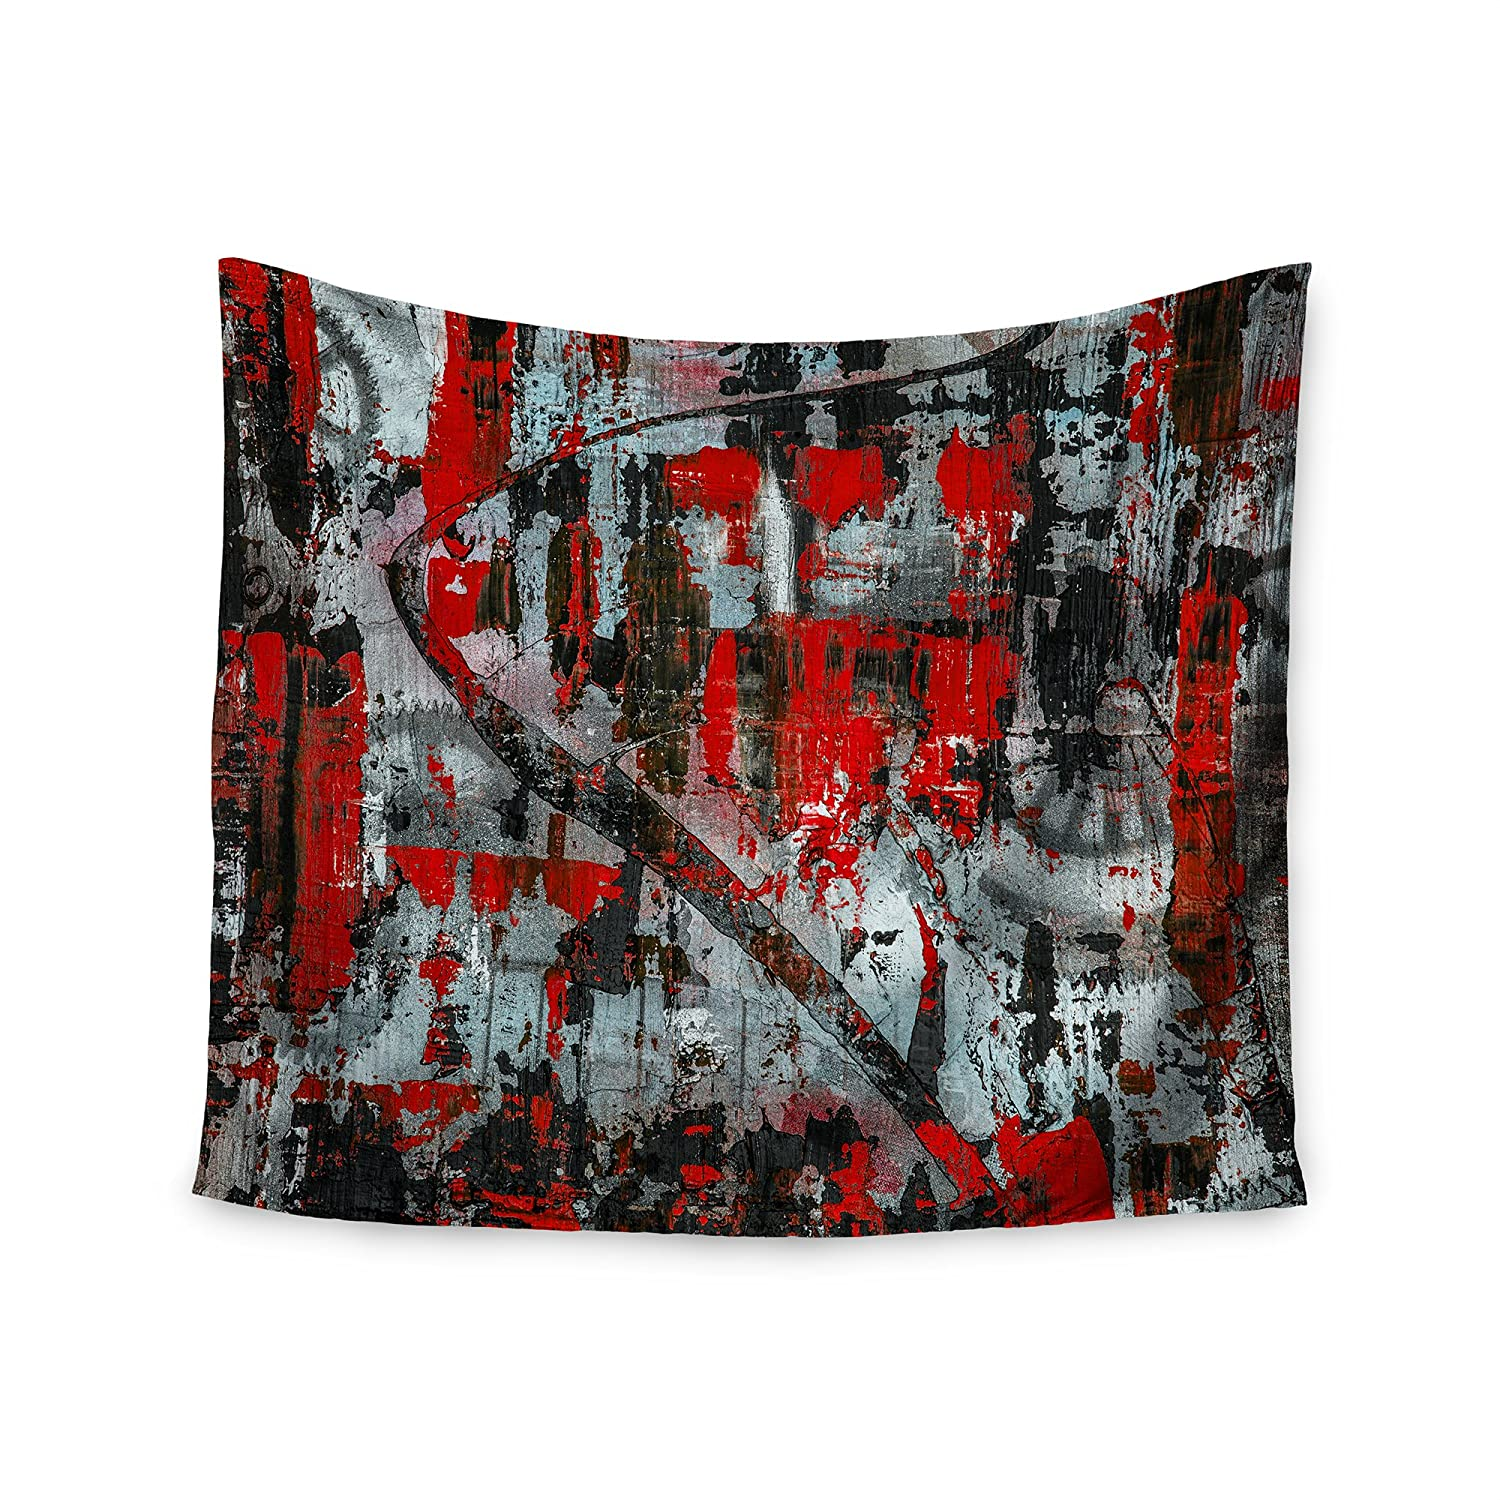 51 x 60 Kess InHouse Bruce Stanfield Zinger in Red Black Abstract Wall Tapestry